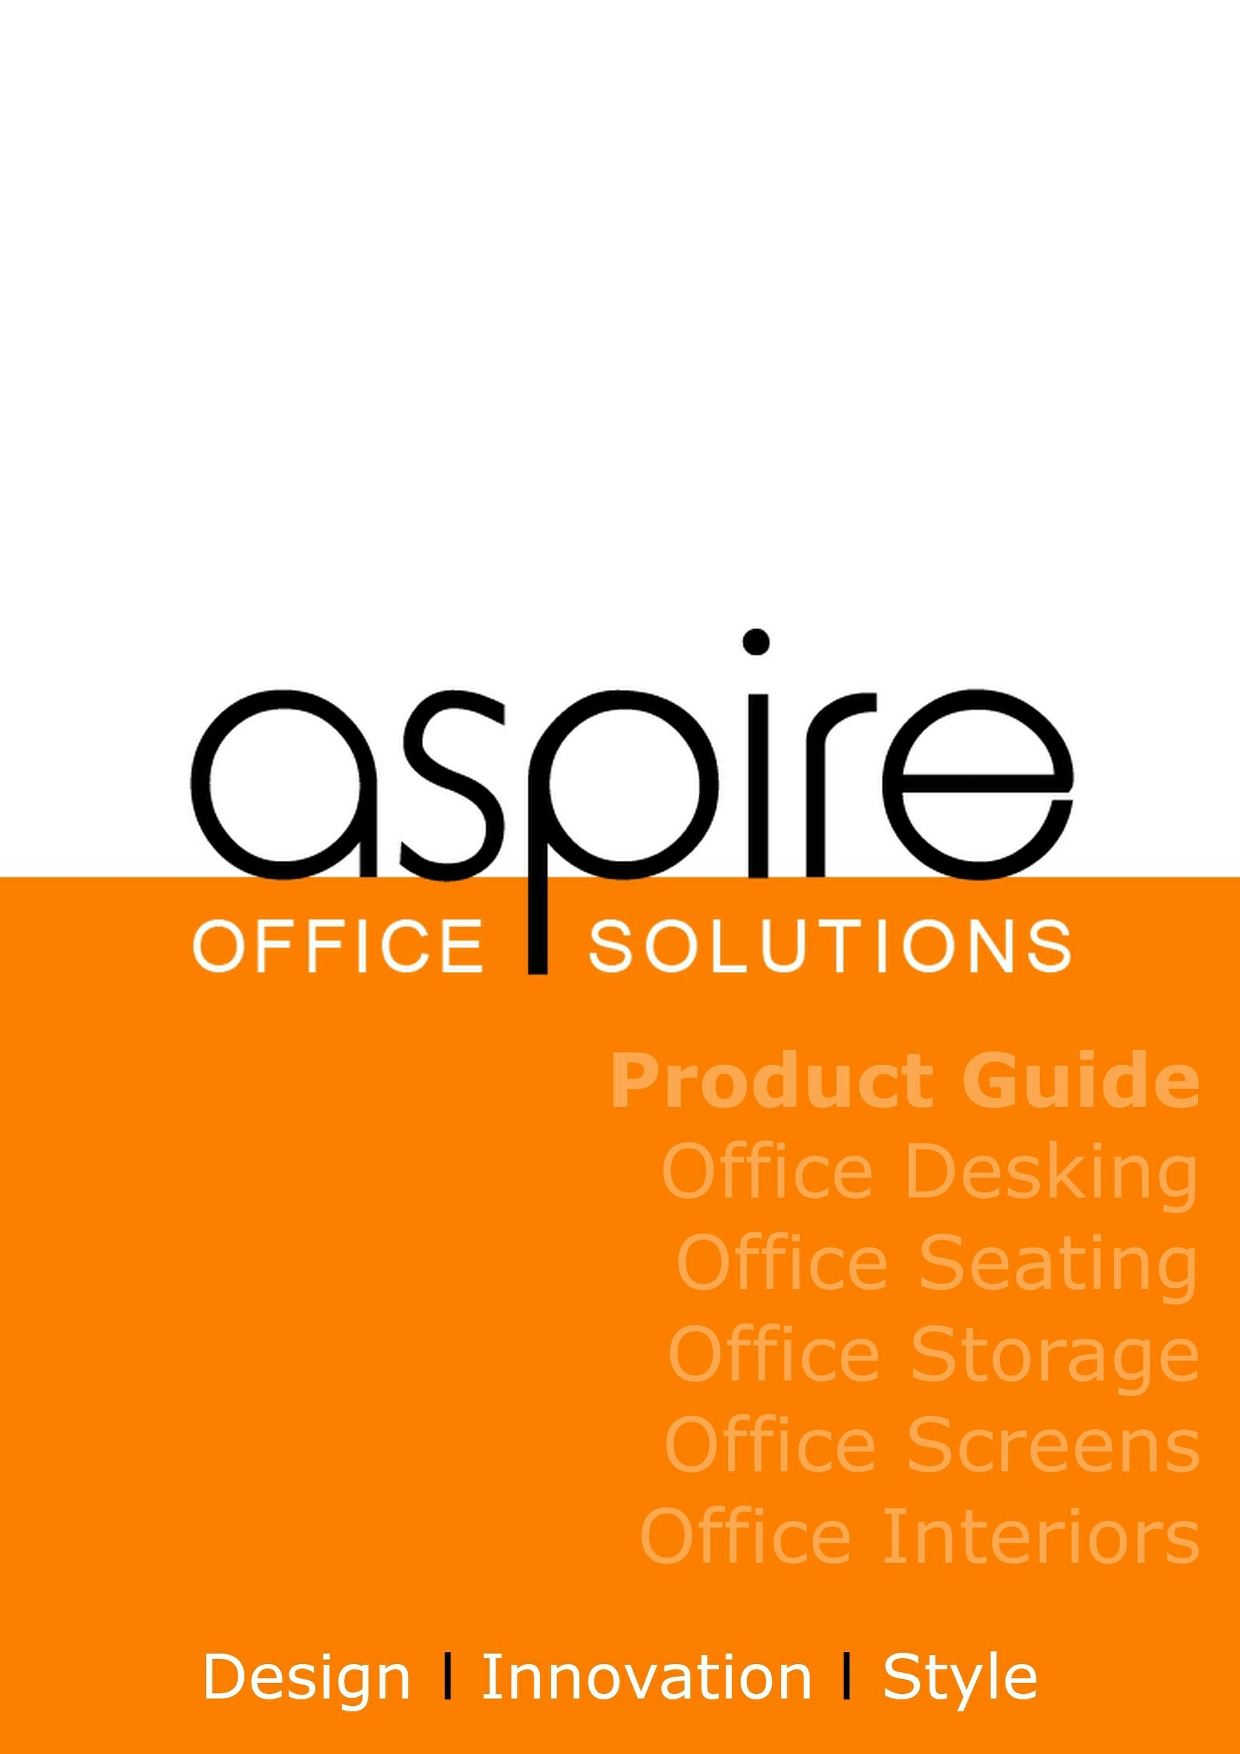 2_Aspire_Office_Solutions_-_Product_Guide